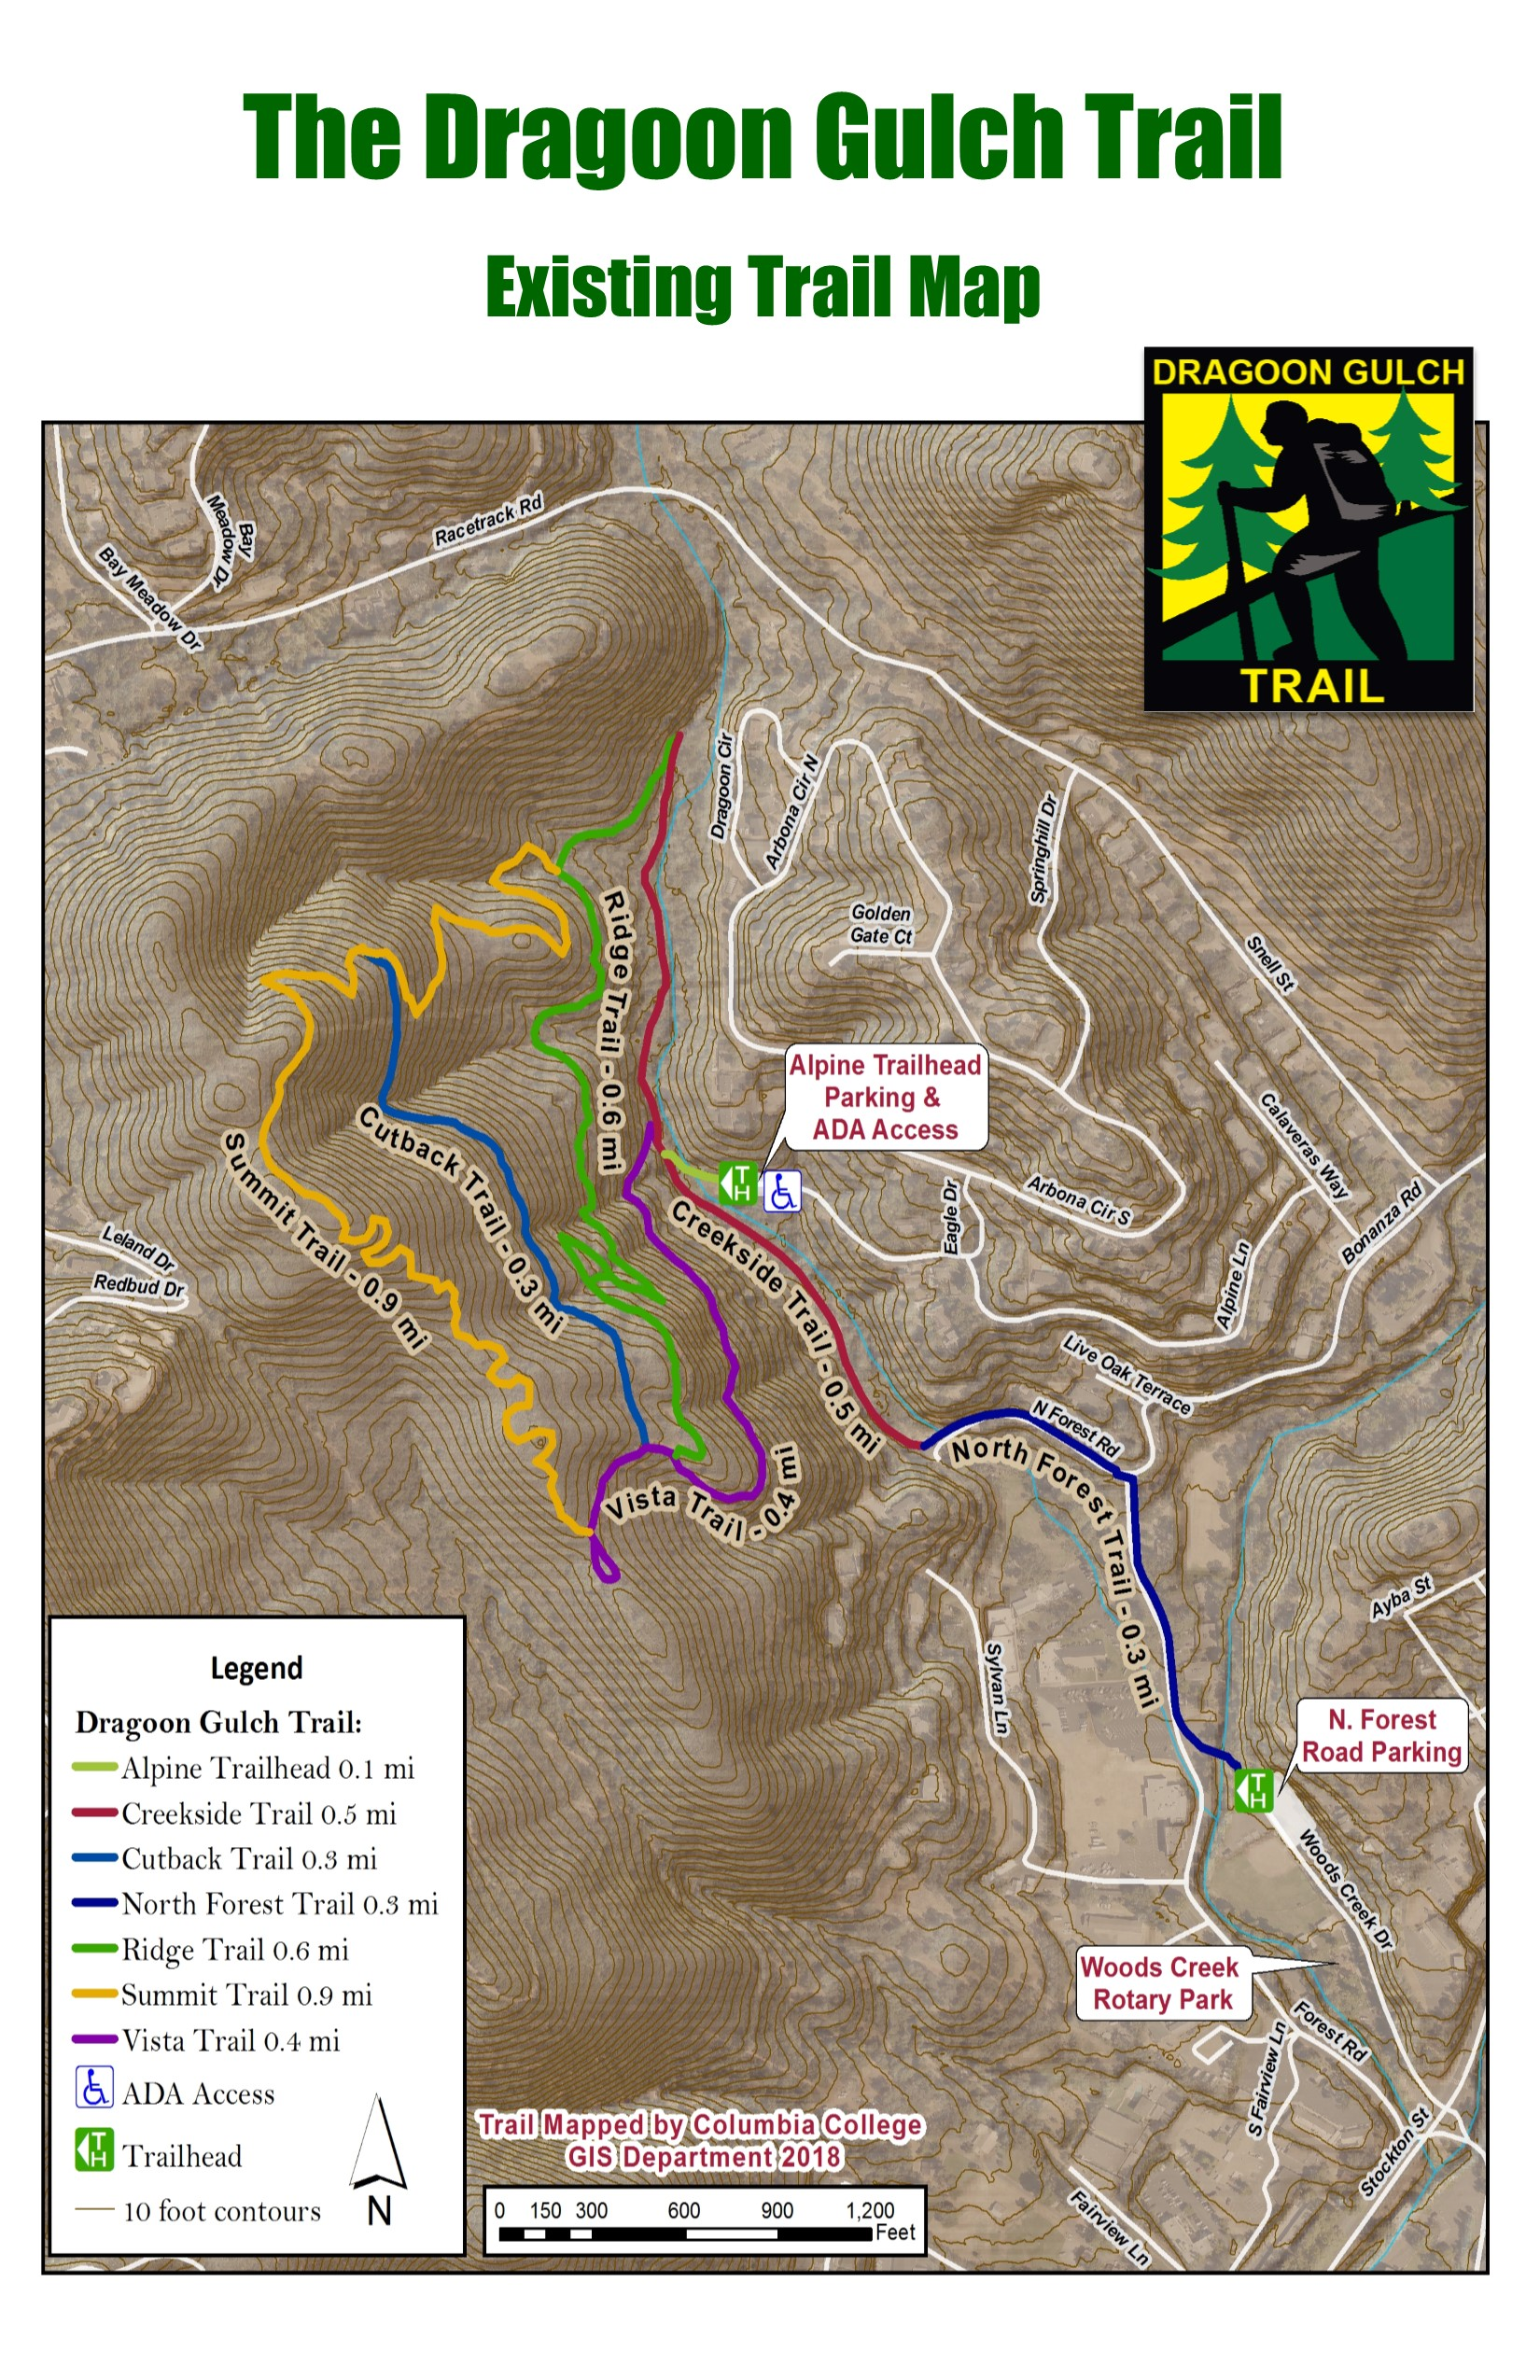 Dragoon Gulch button for map with logo of trail